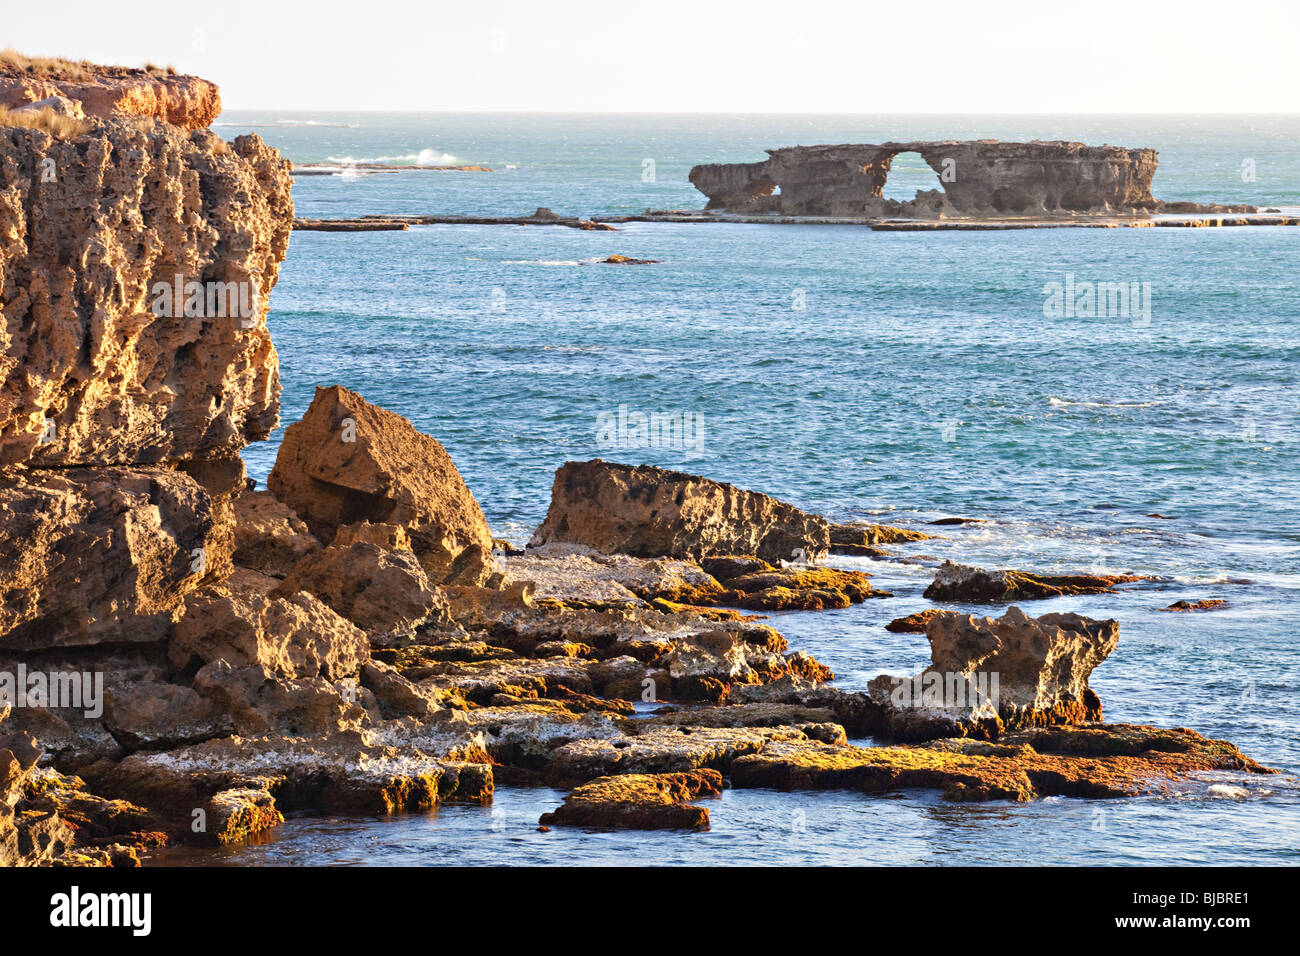 Cliffs at the Ocean , Robe, South Australia - Stock Image